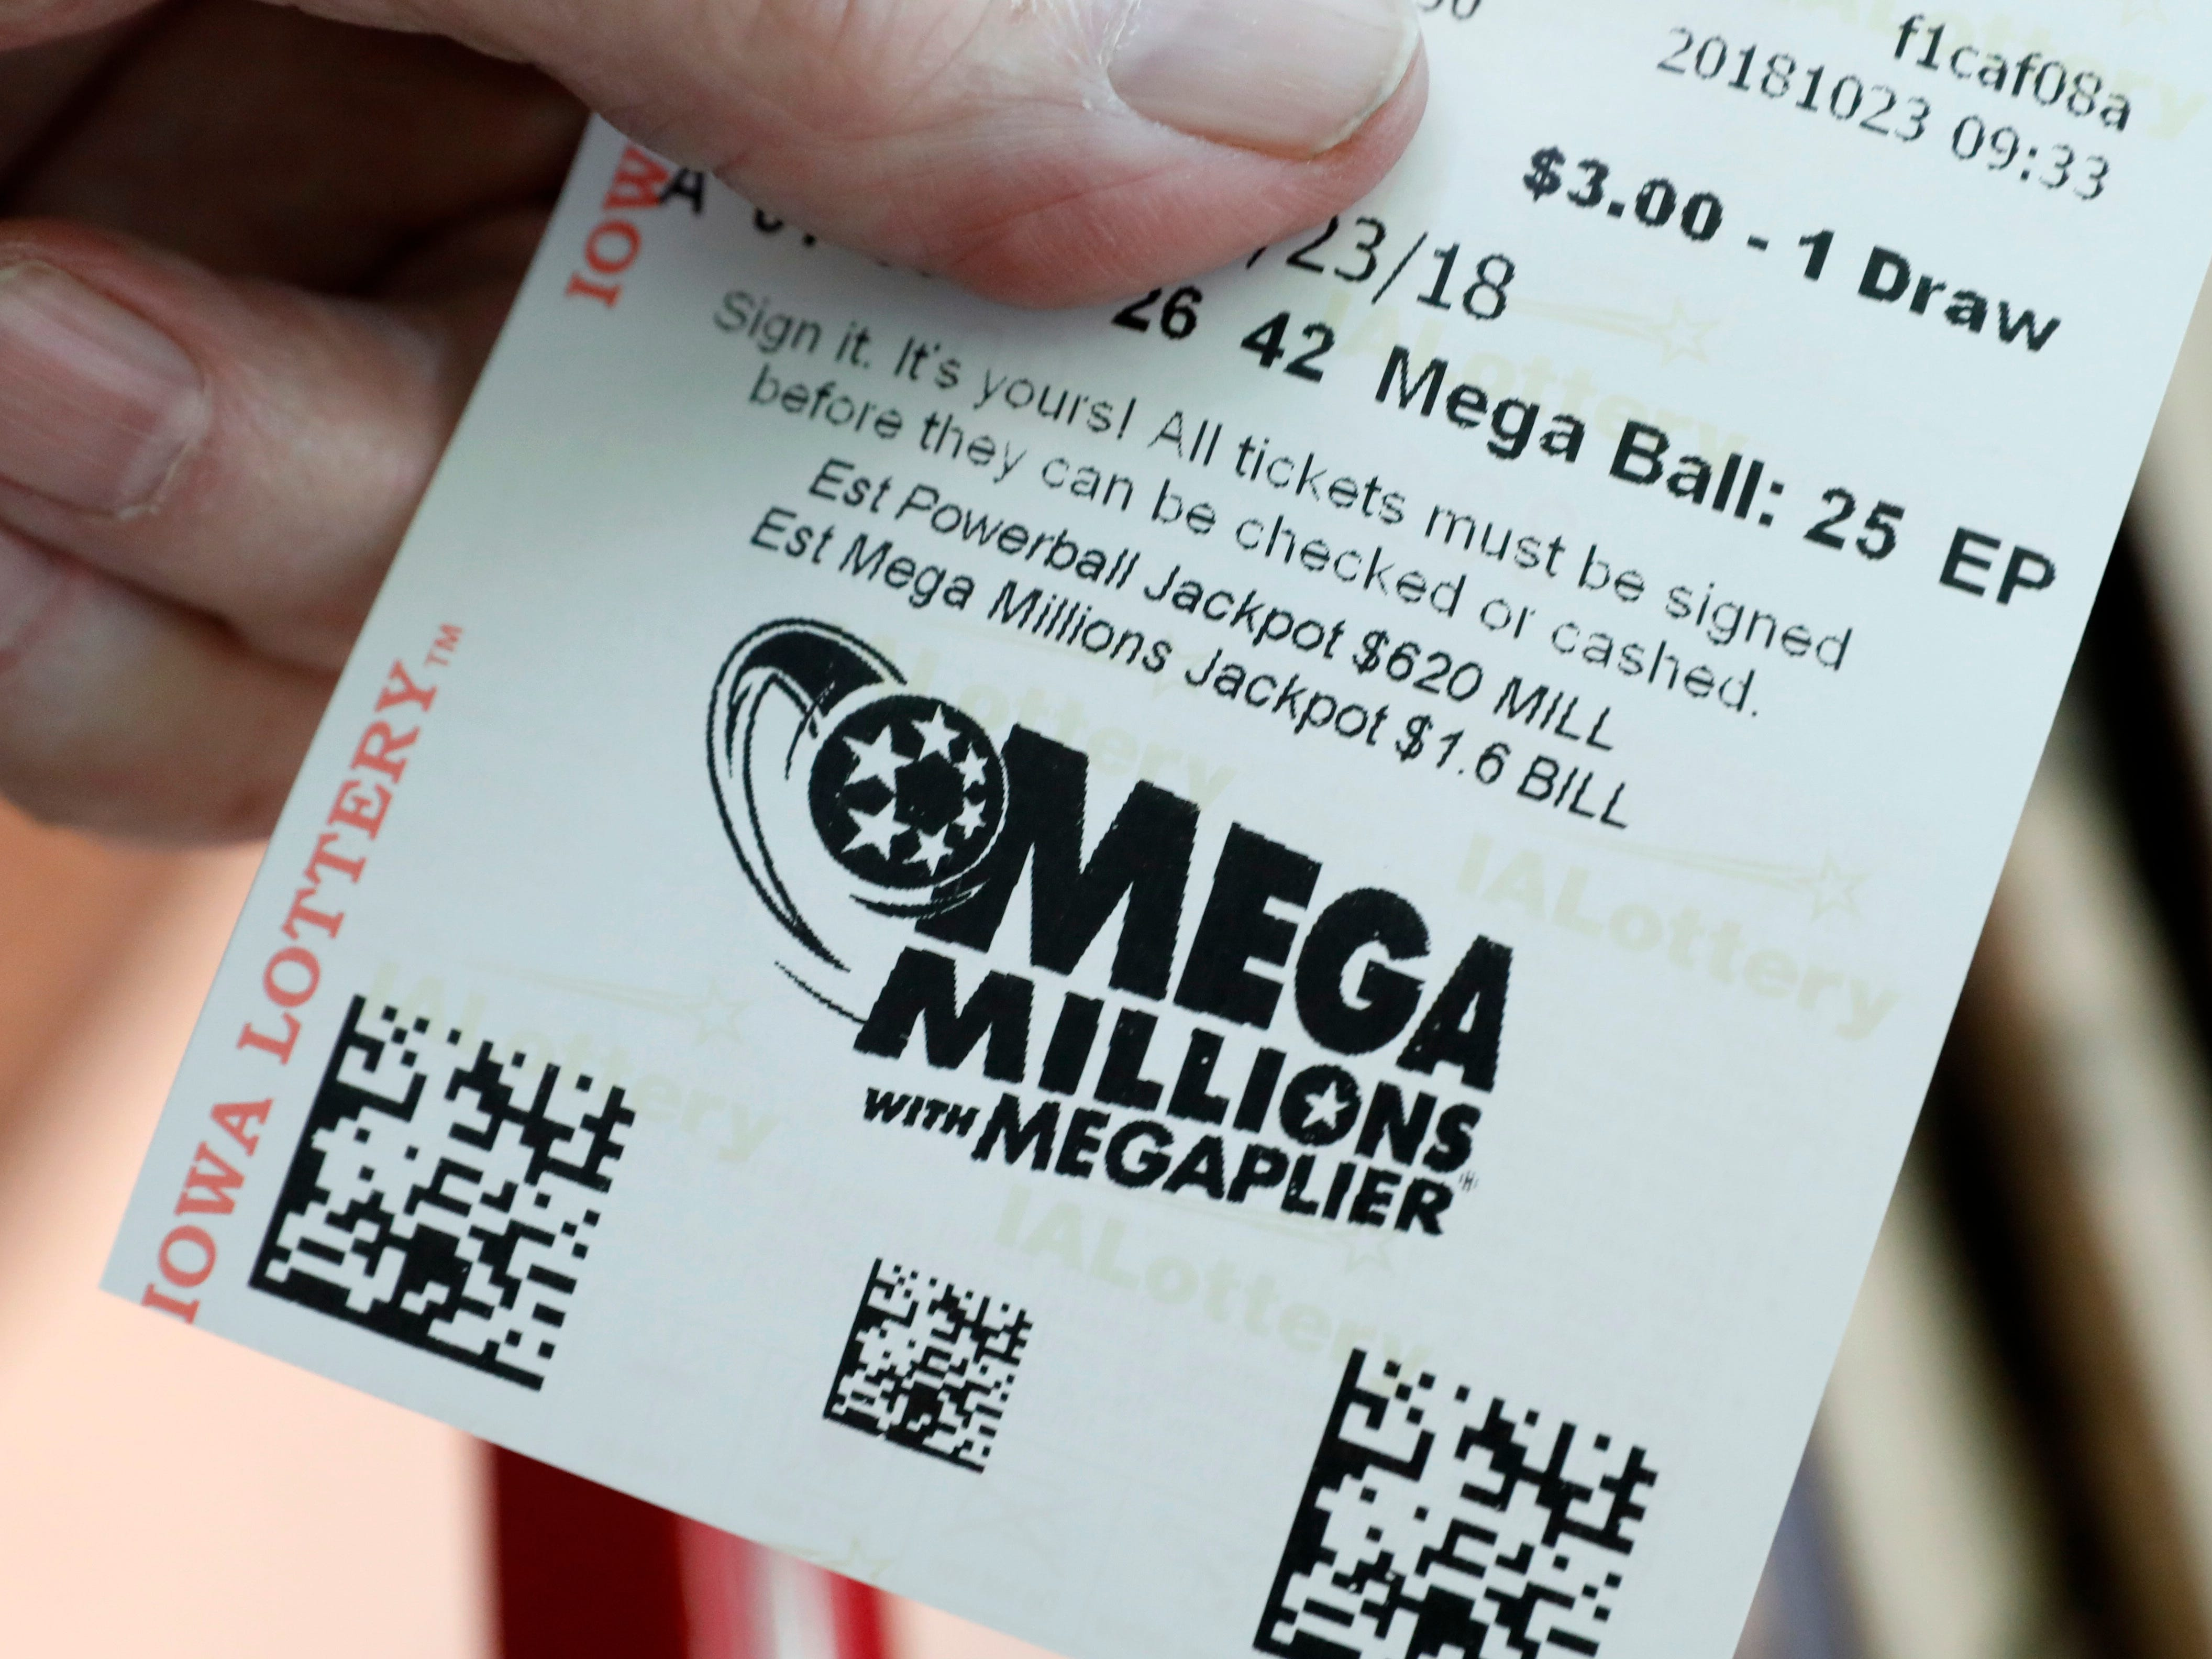 A customer shows his Mega Millions lottery ticket at a local grocery store, Tuesday, Oct. 23, 2018, in Des Moines, Iowa.